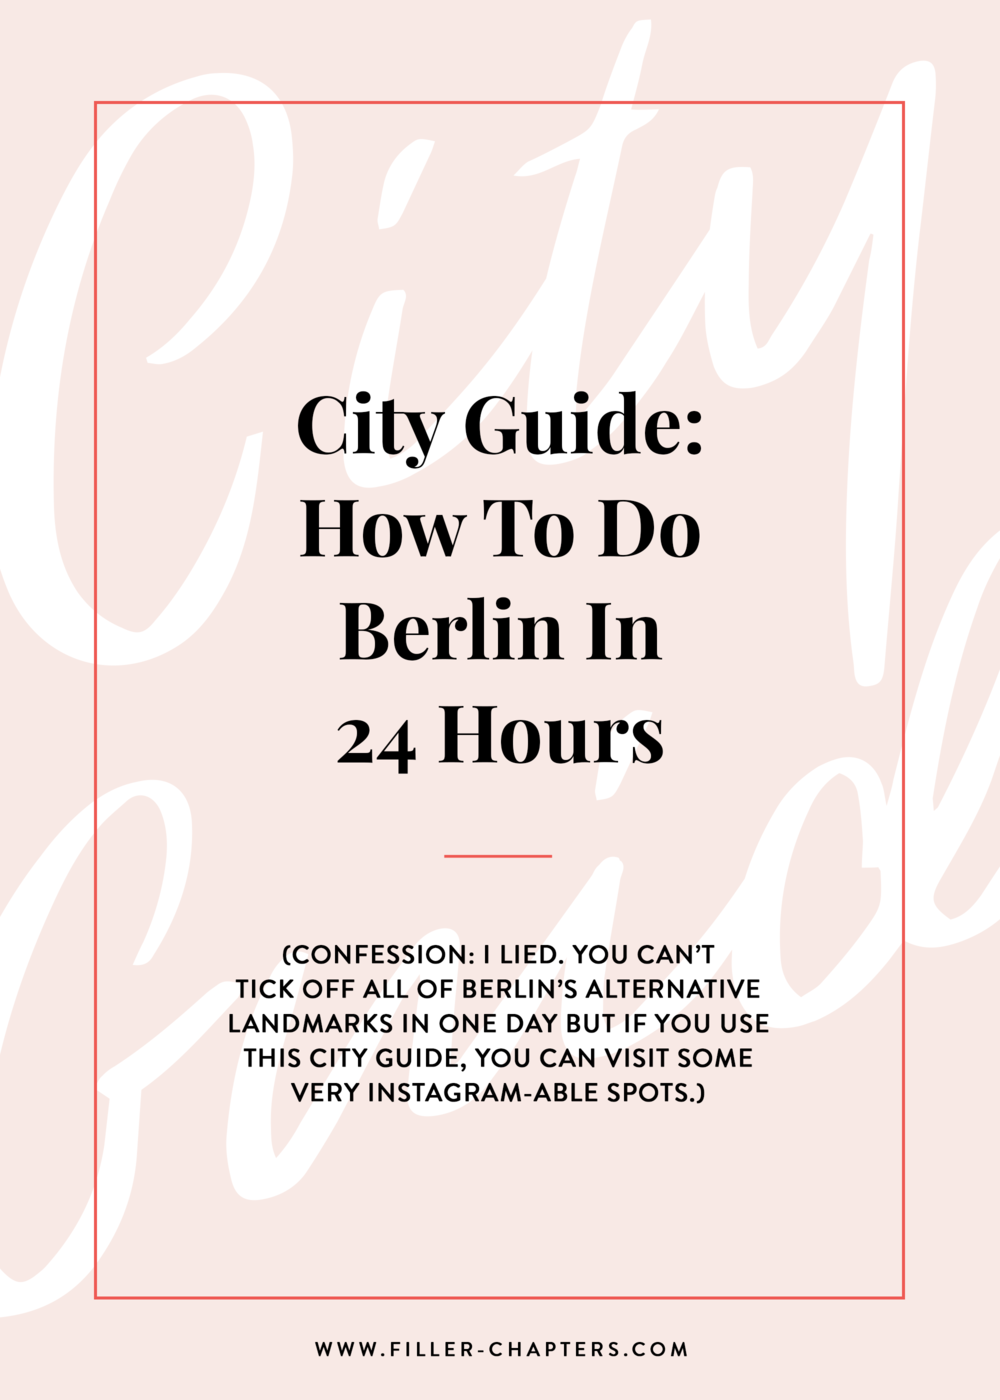 Berlin City Guide.png